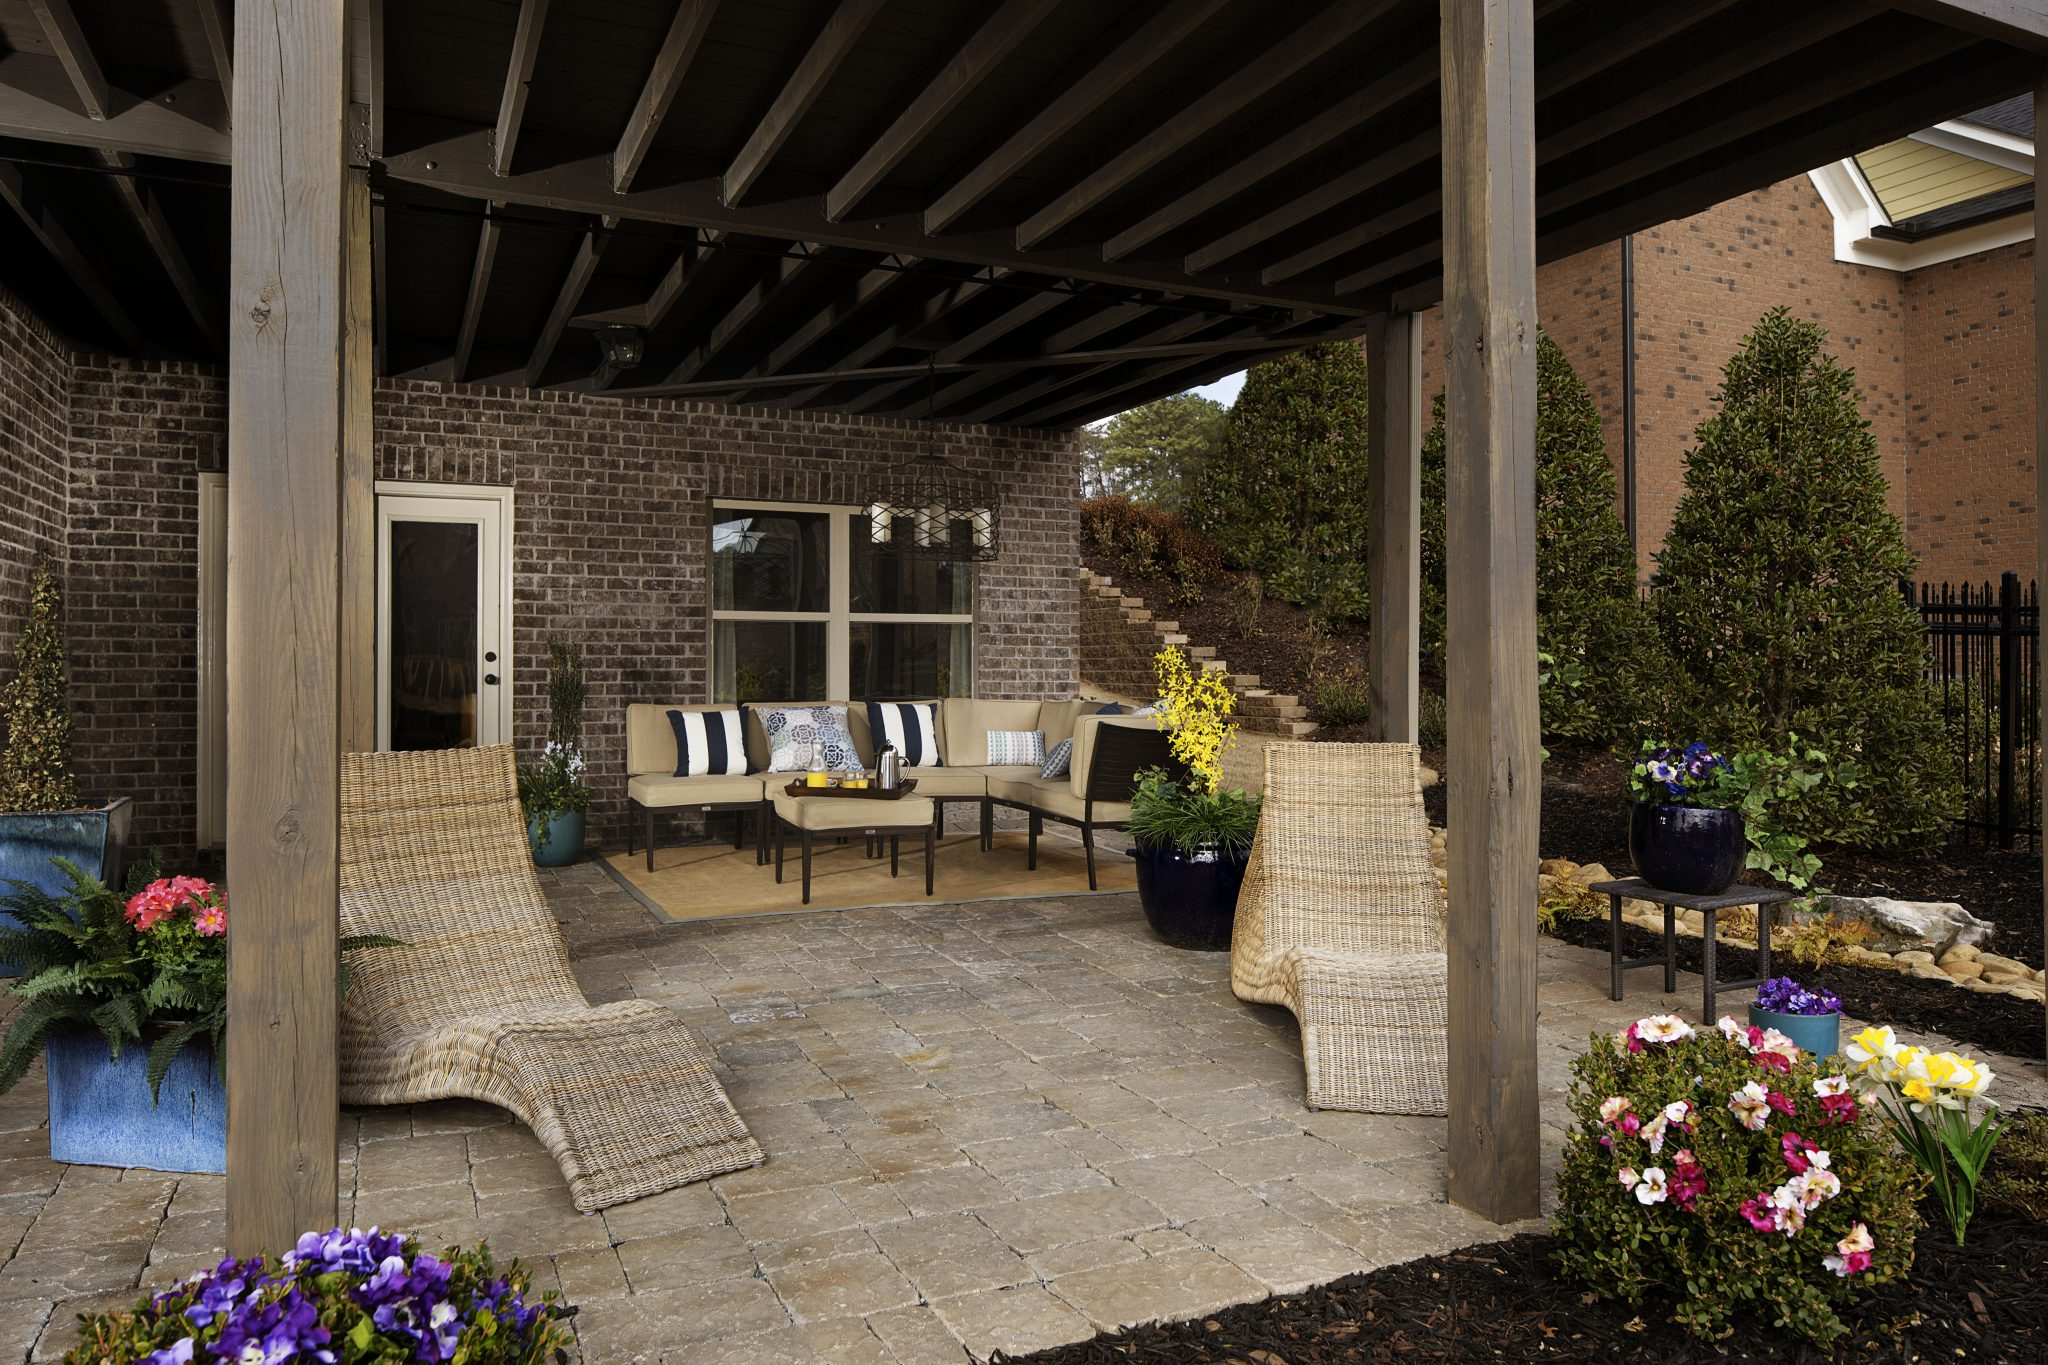 An outdoor oasis at Mabry Manor created with stone pavers, elegant lighting  and cozy seating